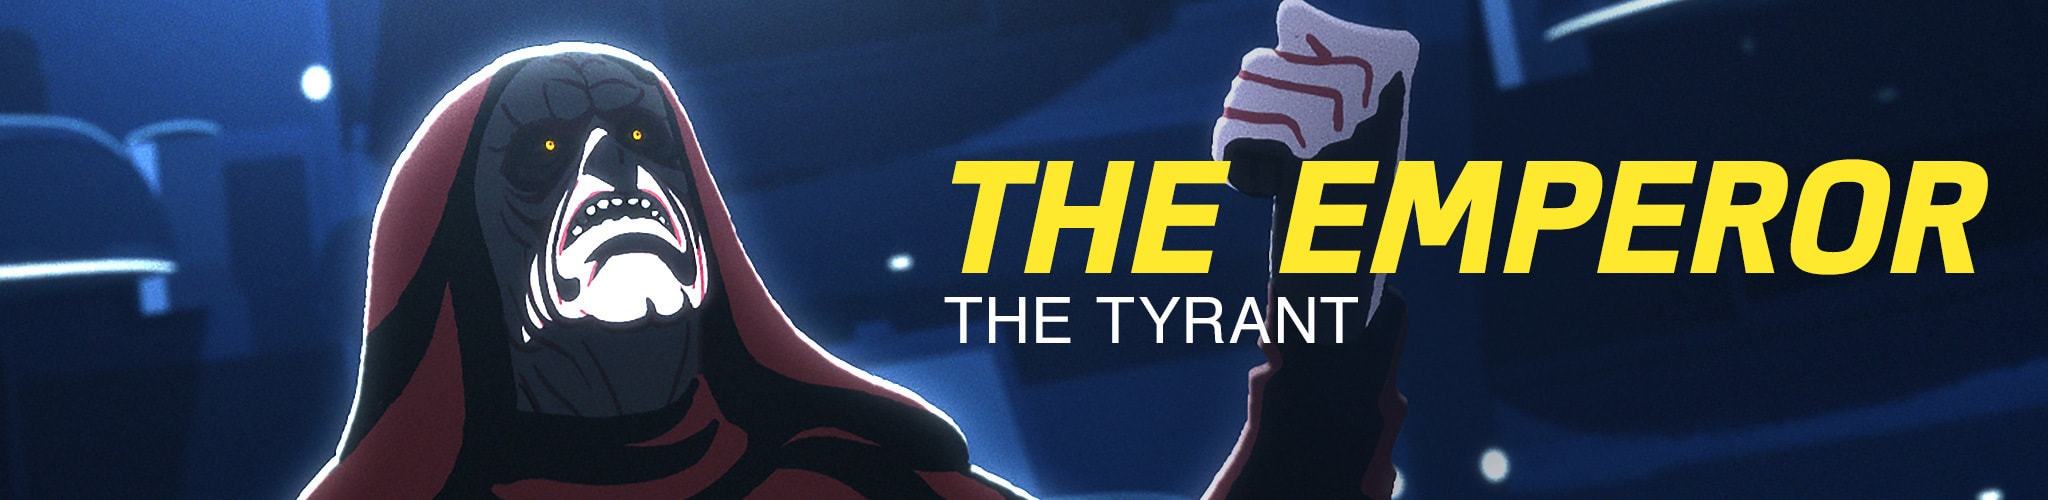 The Emperor - The Tyrant